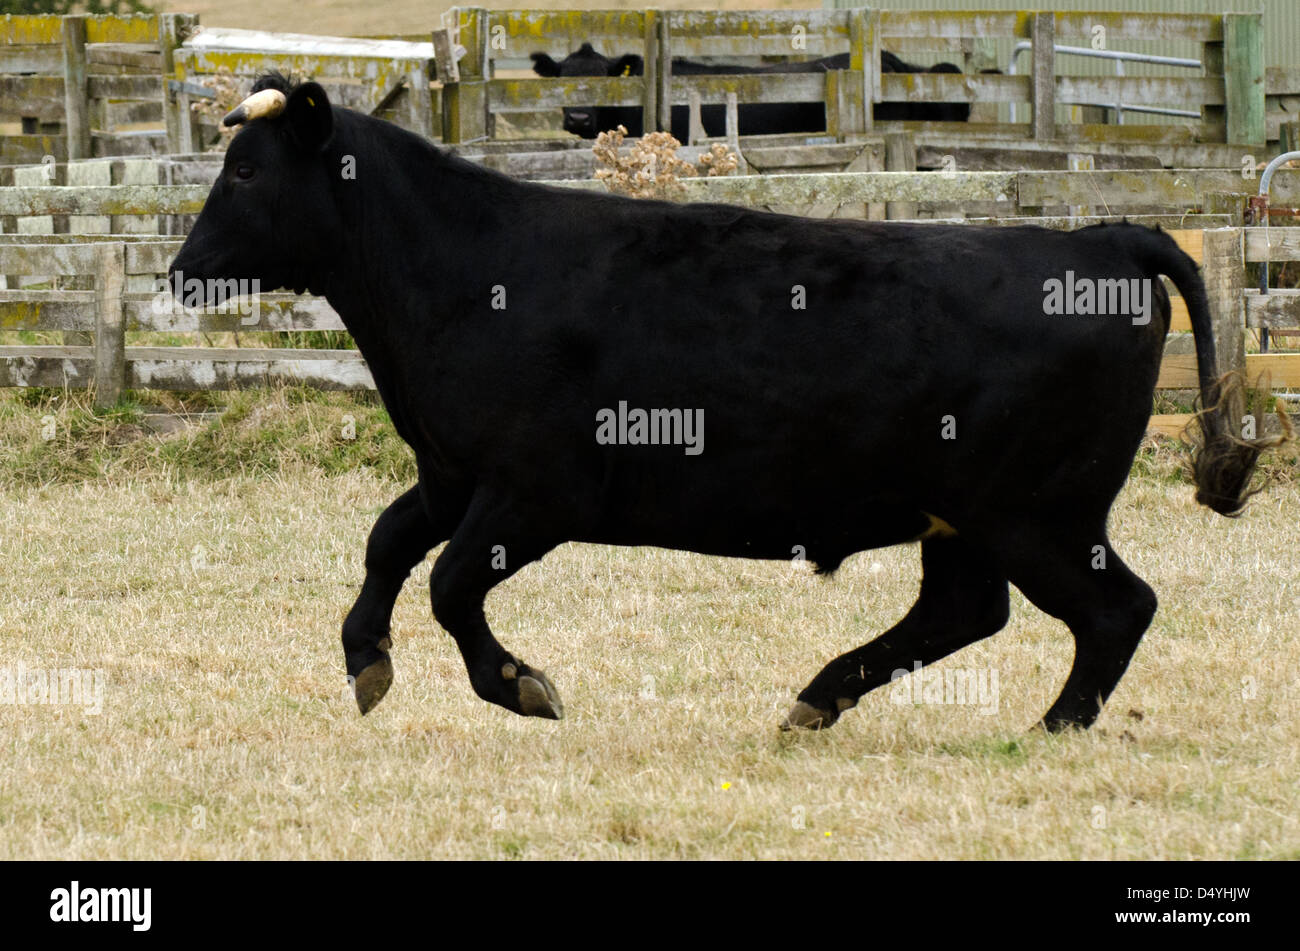 Angry big black bull charges in a farm. - Stock Image